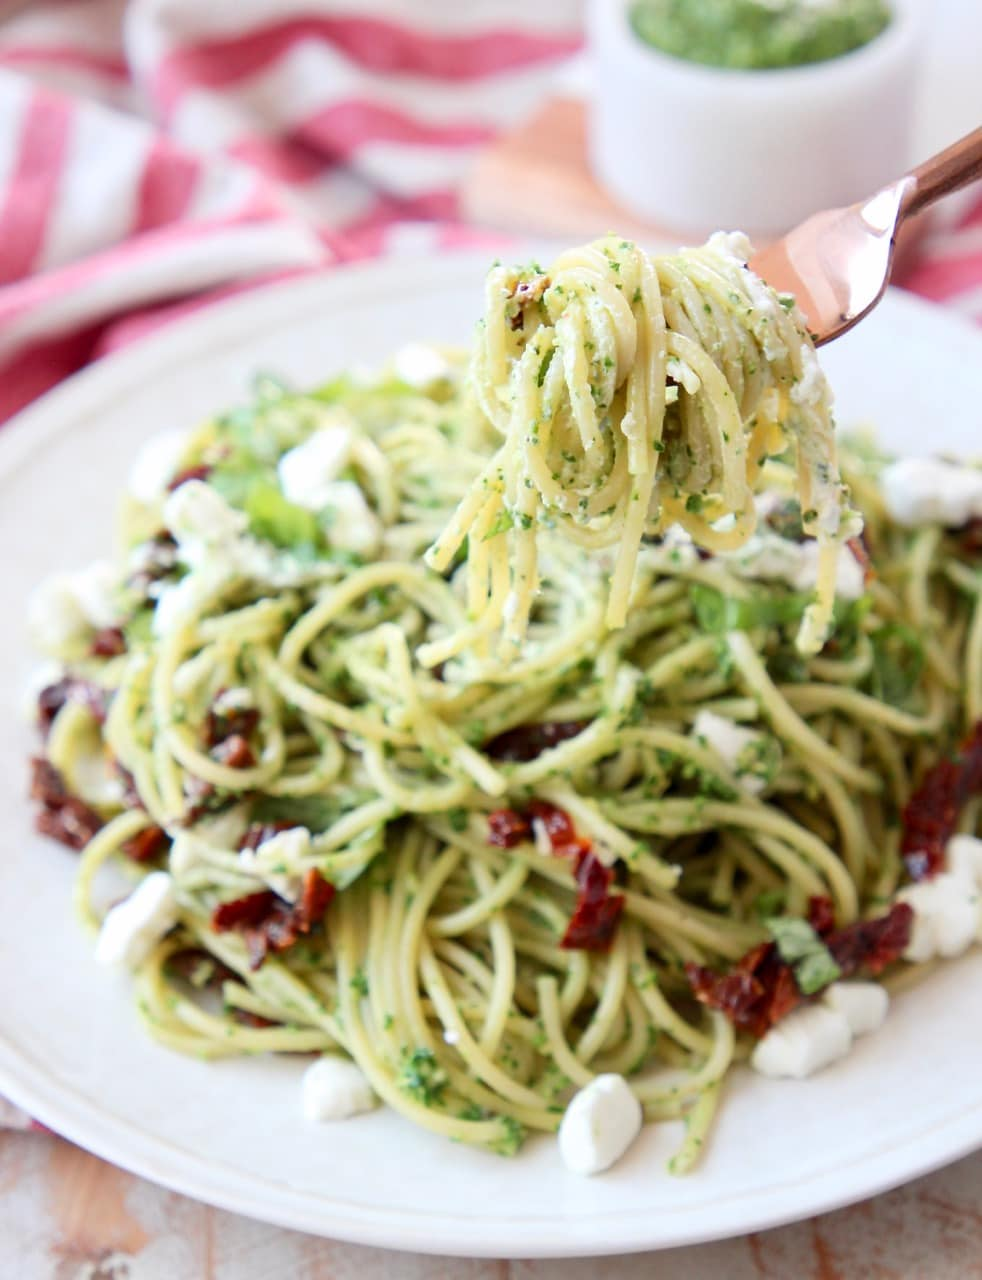 Pesto spaghetti wrapped around a copper fork, held over a plate of pesto spaghetti with crumbled goat cheese and sun dried tomatoes